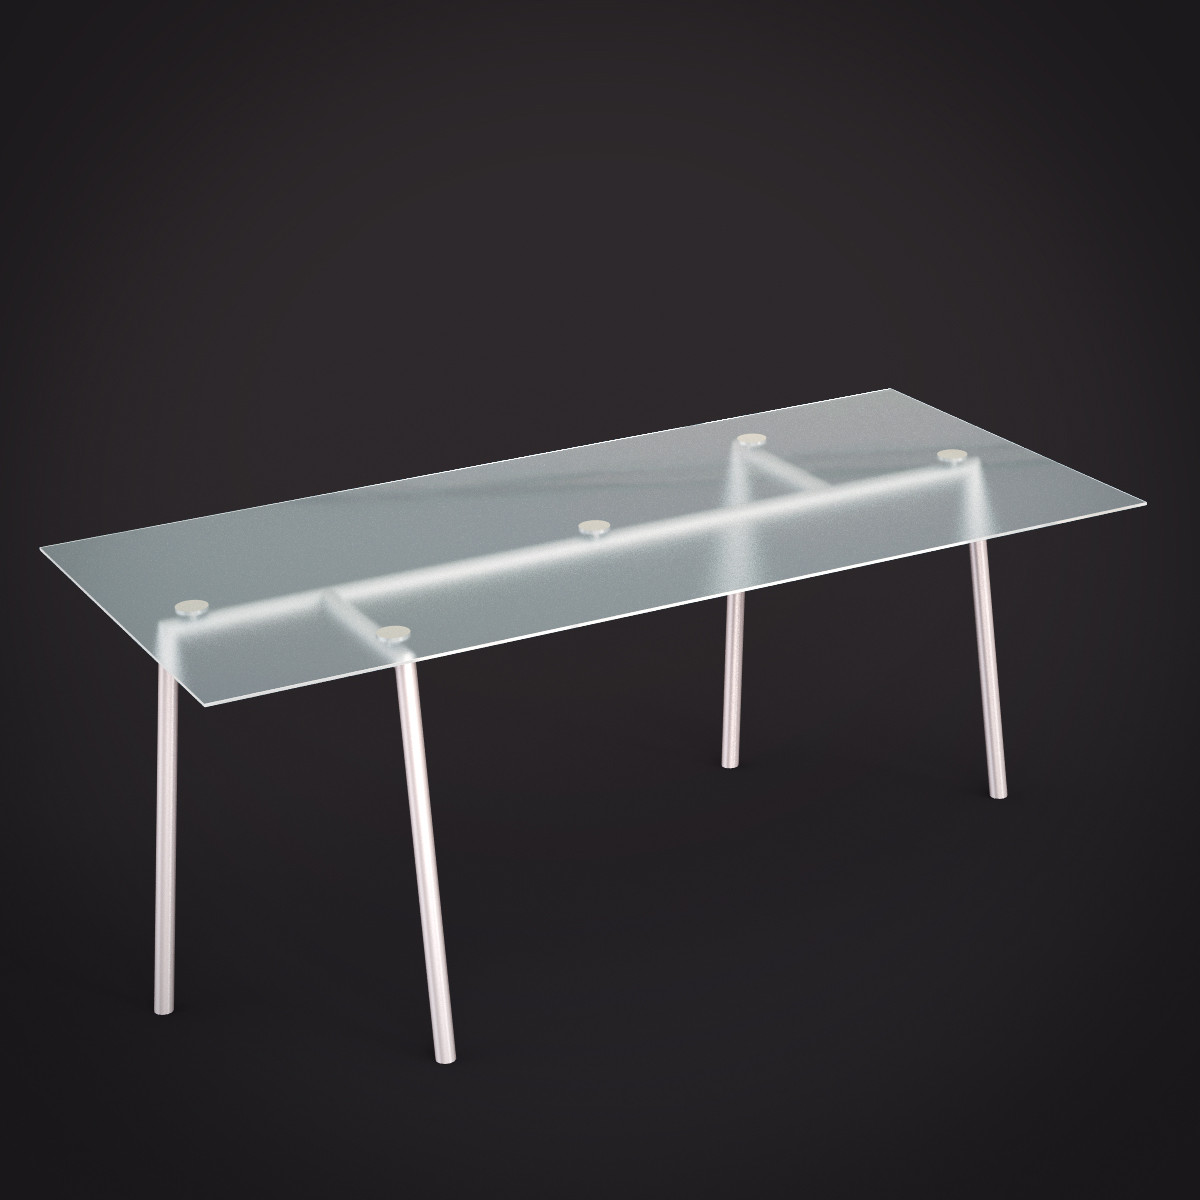 3ds max plateaux table topdeq for Topdeq design